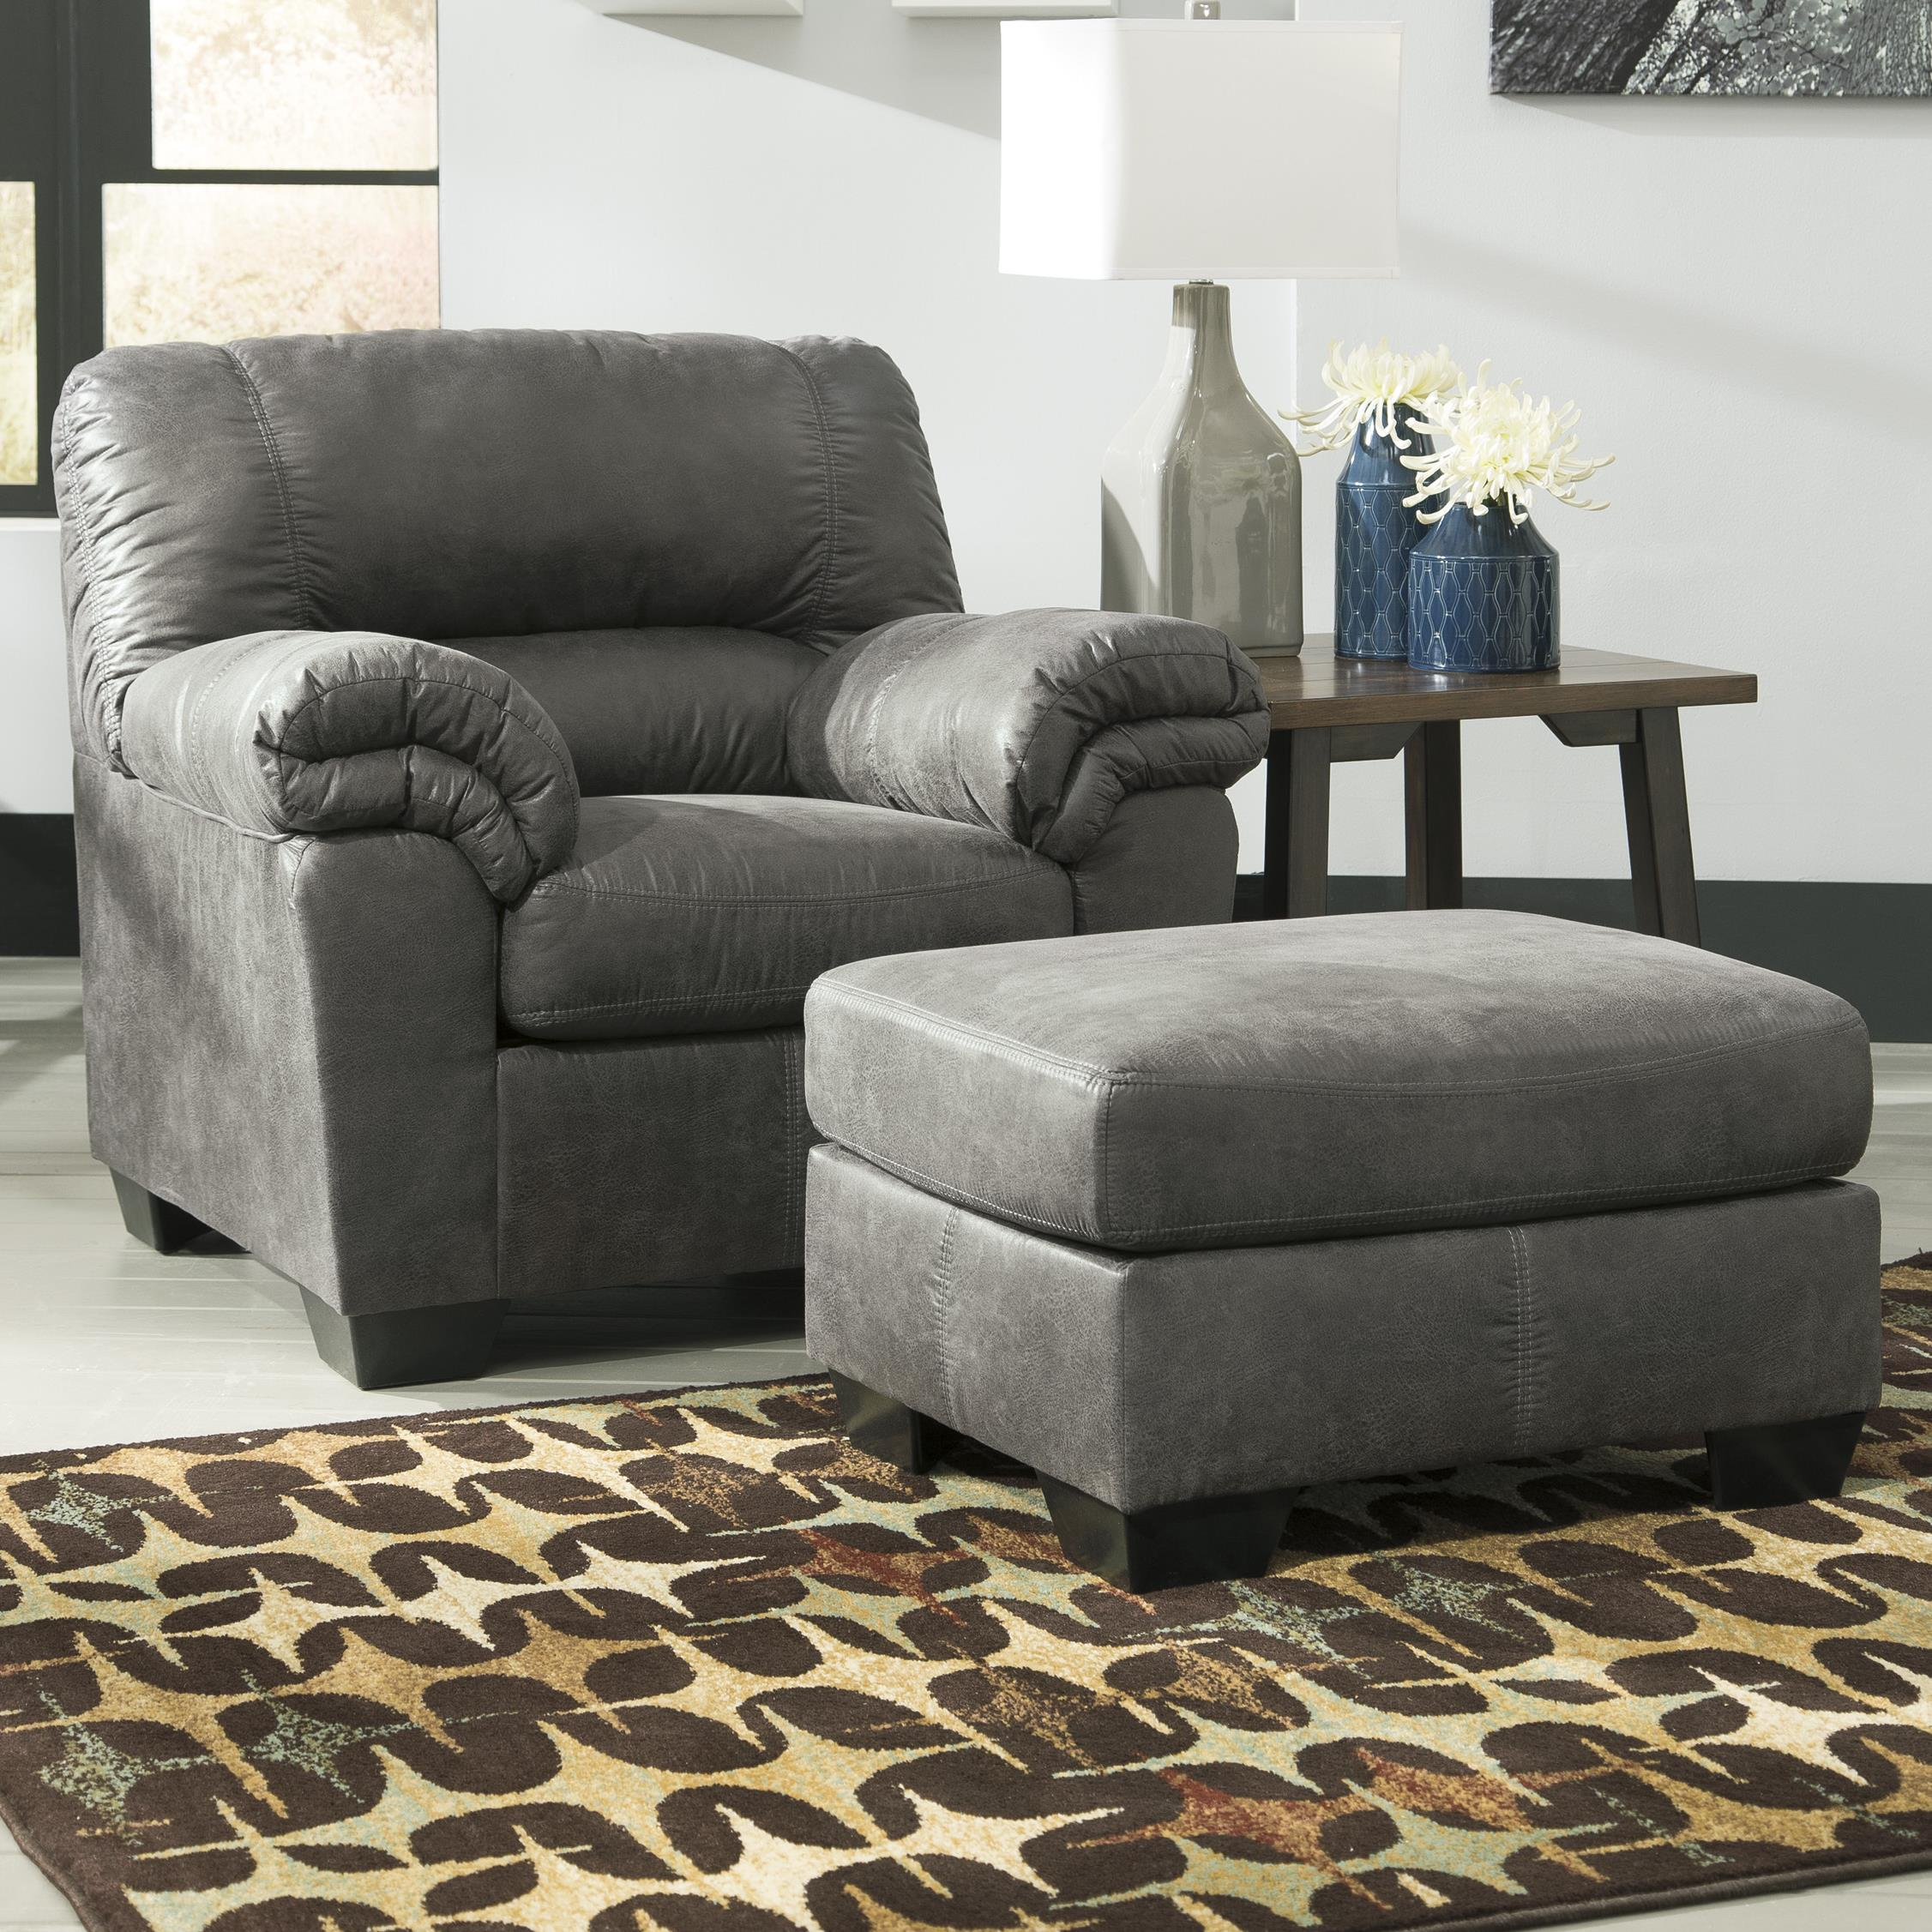 Casual Faux Leather Chair & Ottoman by Signature Design by